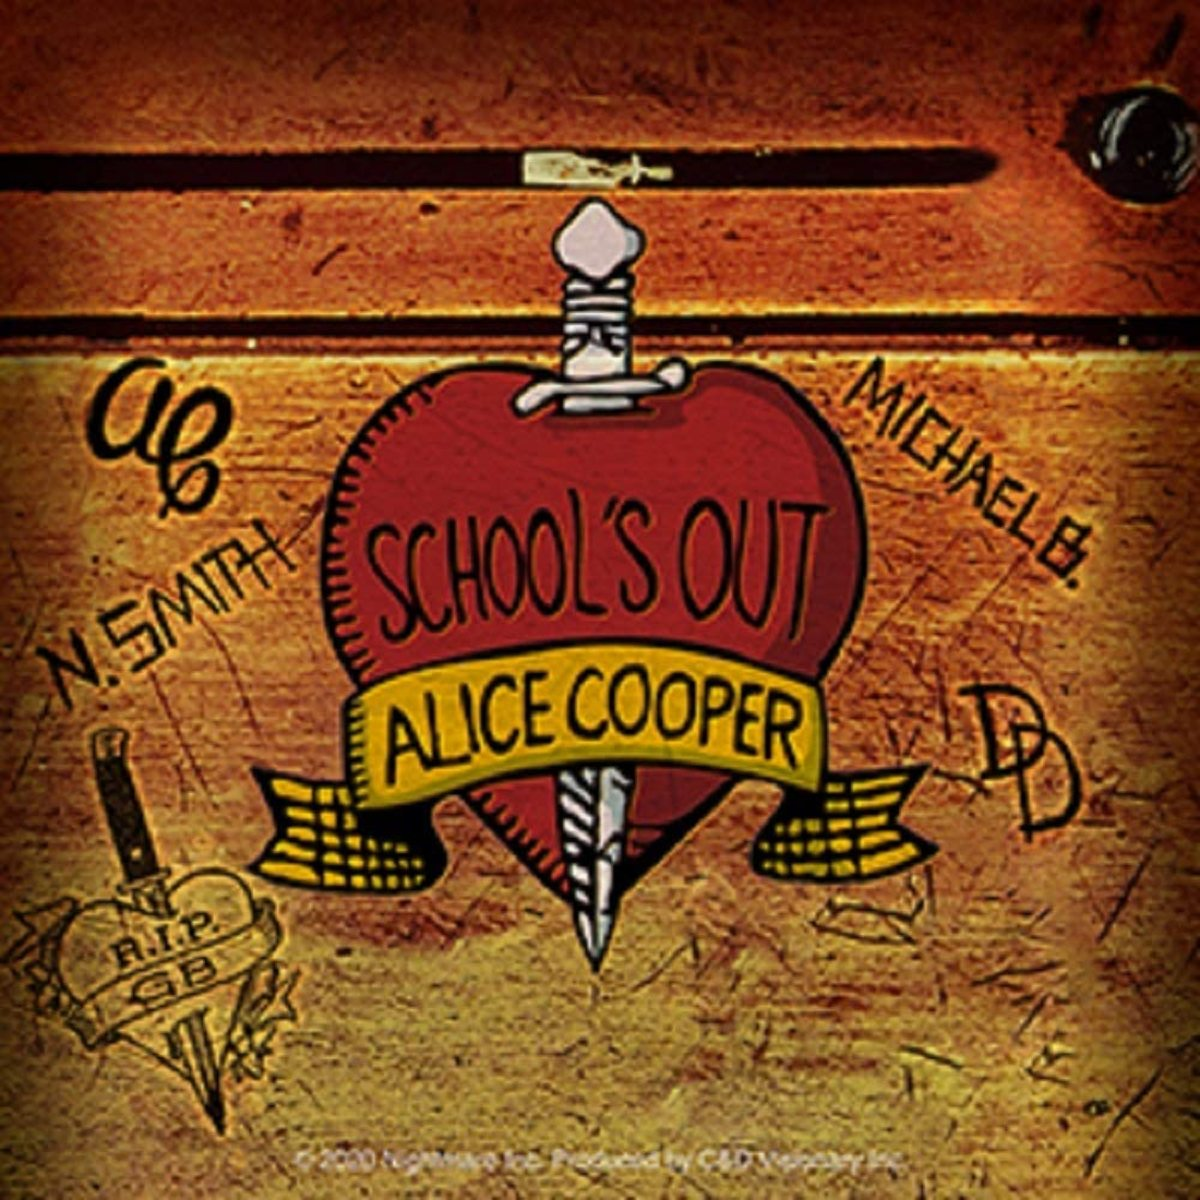 review-of-the-album-schools-out-by-alice-cooper-band